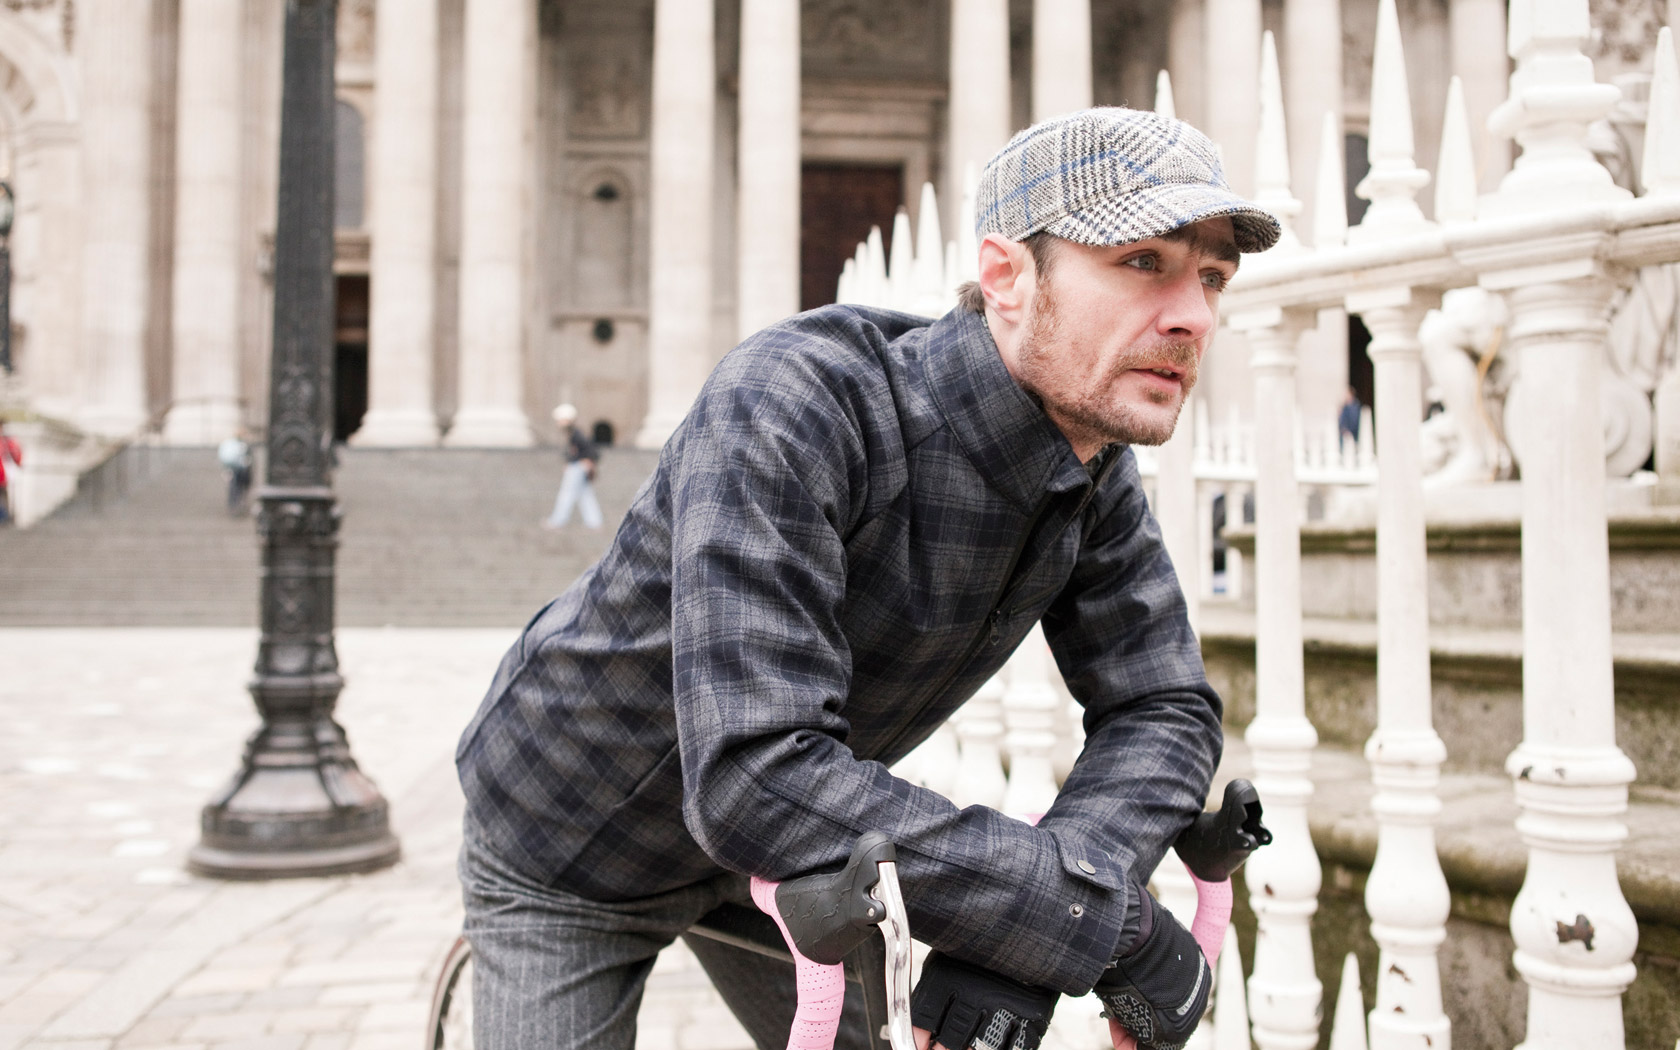 Fuga The Smart Bike Apparel For Urban Cycling Made In Italy